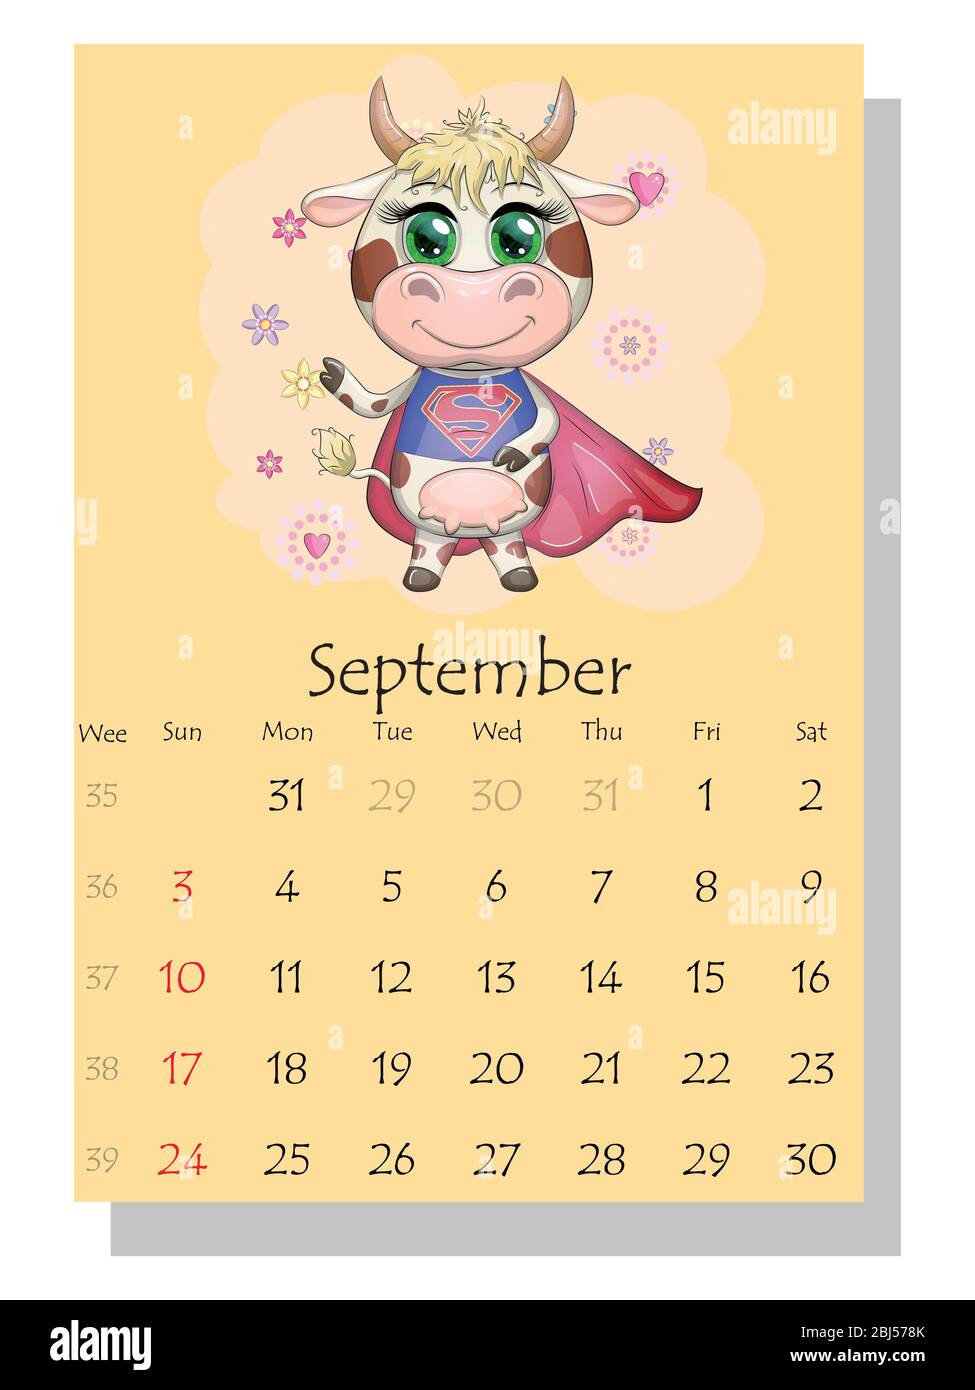 Pictures of 2021 Cow Calendar September